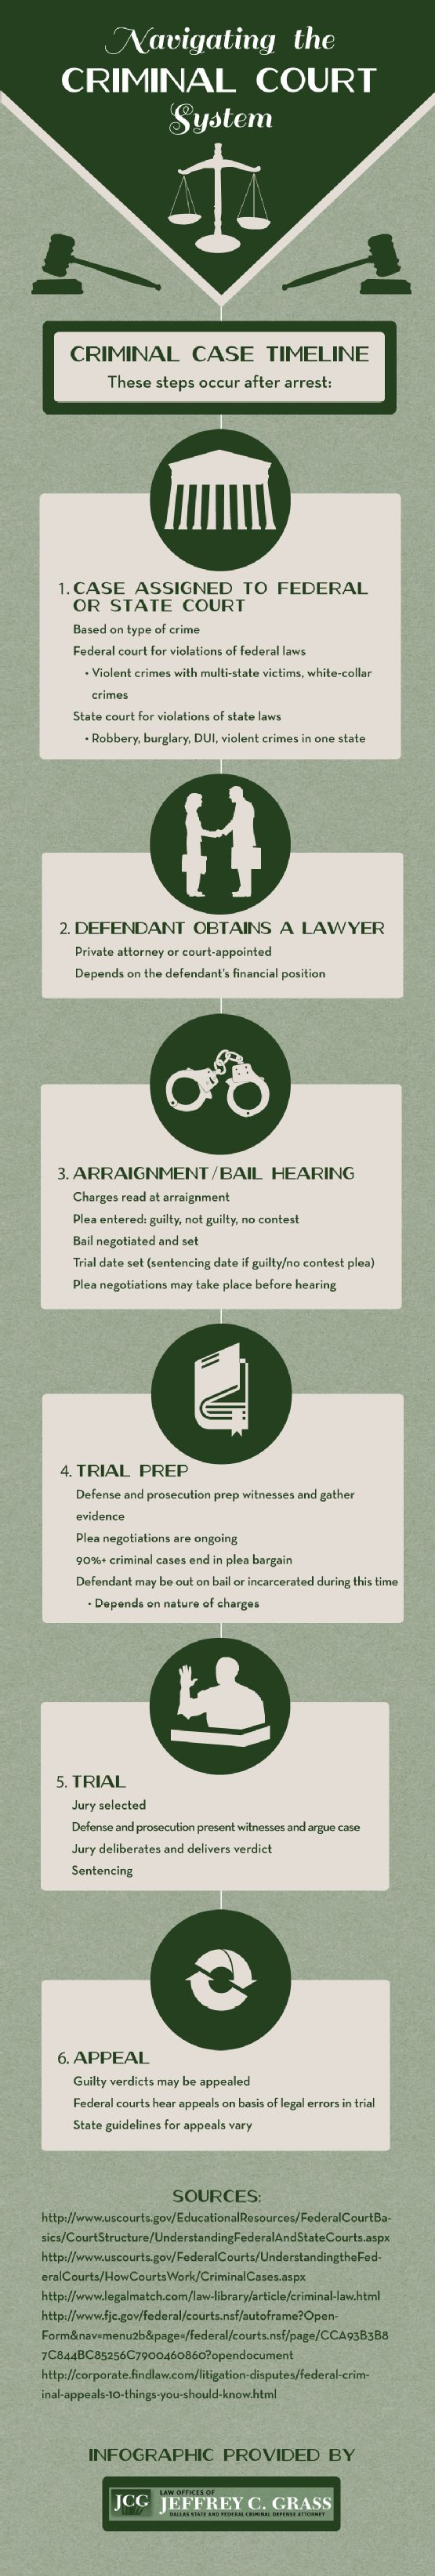 Check out this infographic from the Law